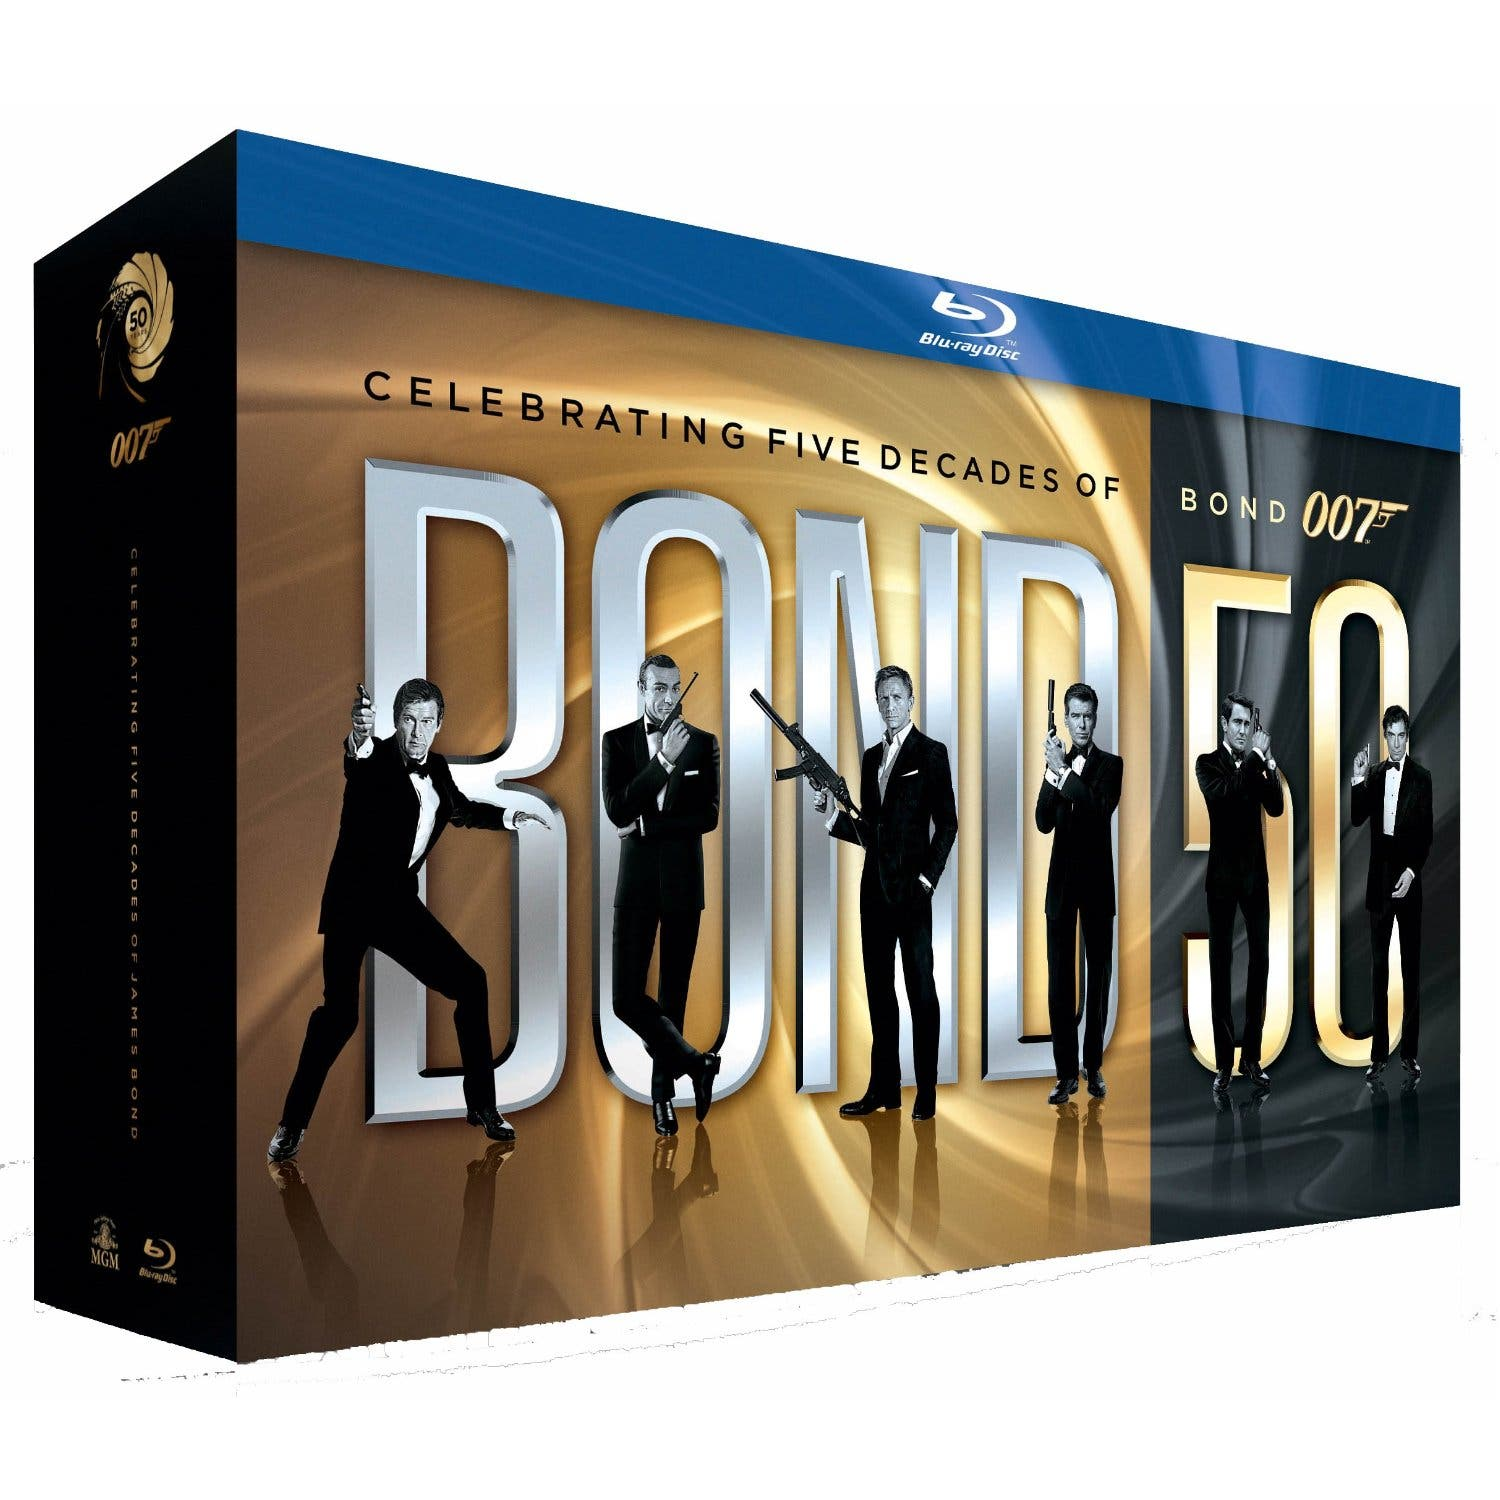 BD 50 ANNIVERSARY BOND PACK PICTURE